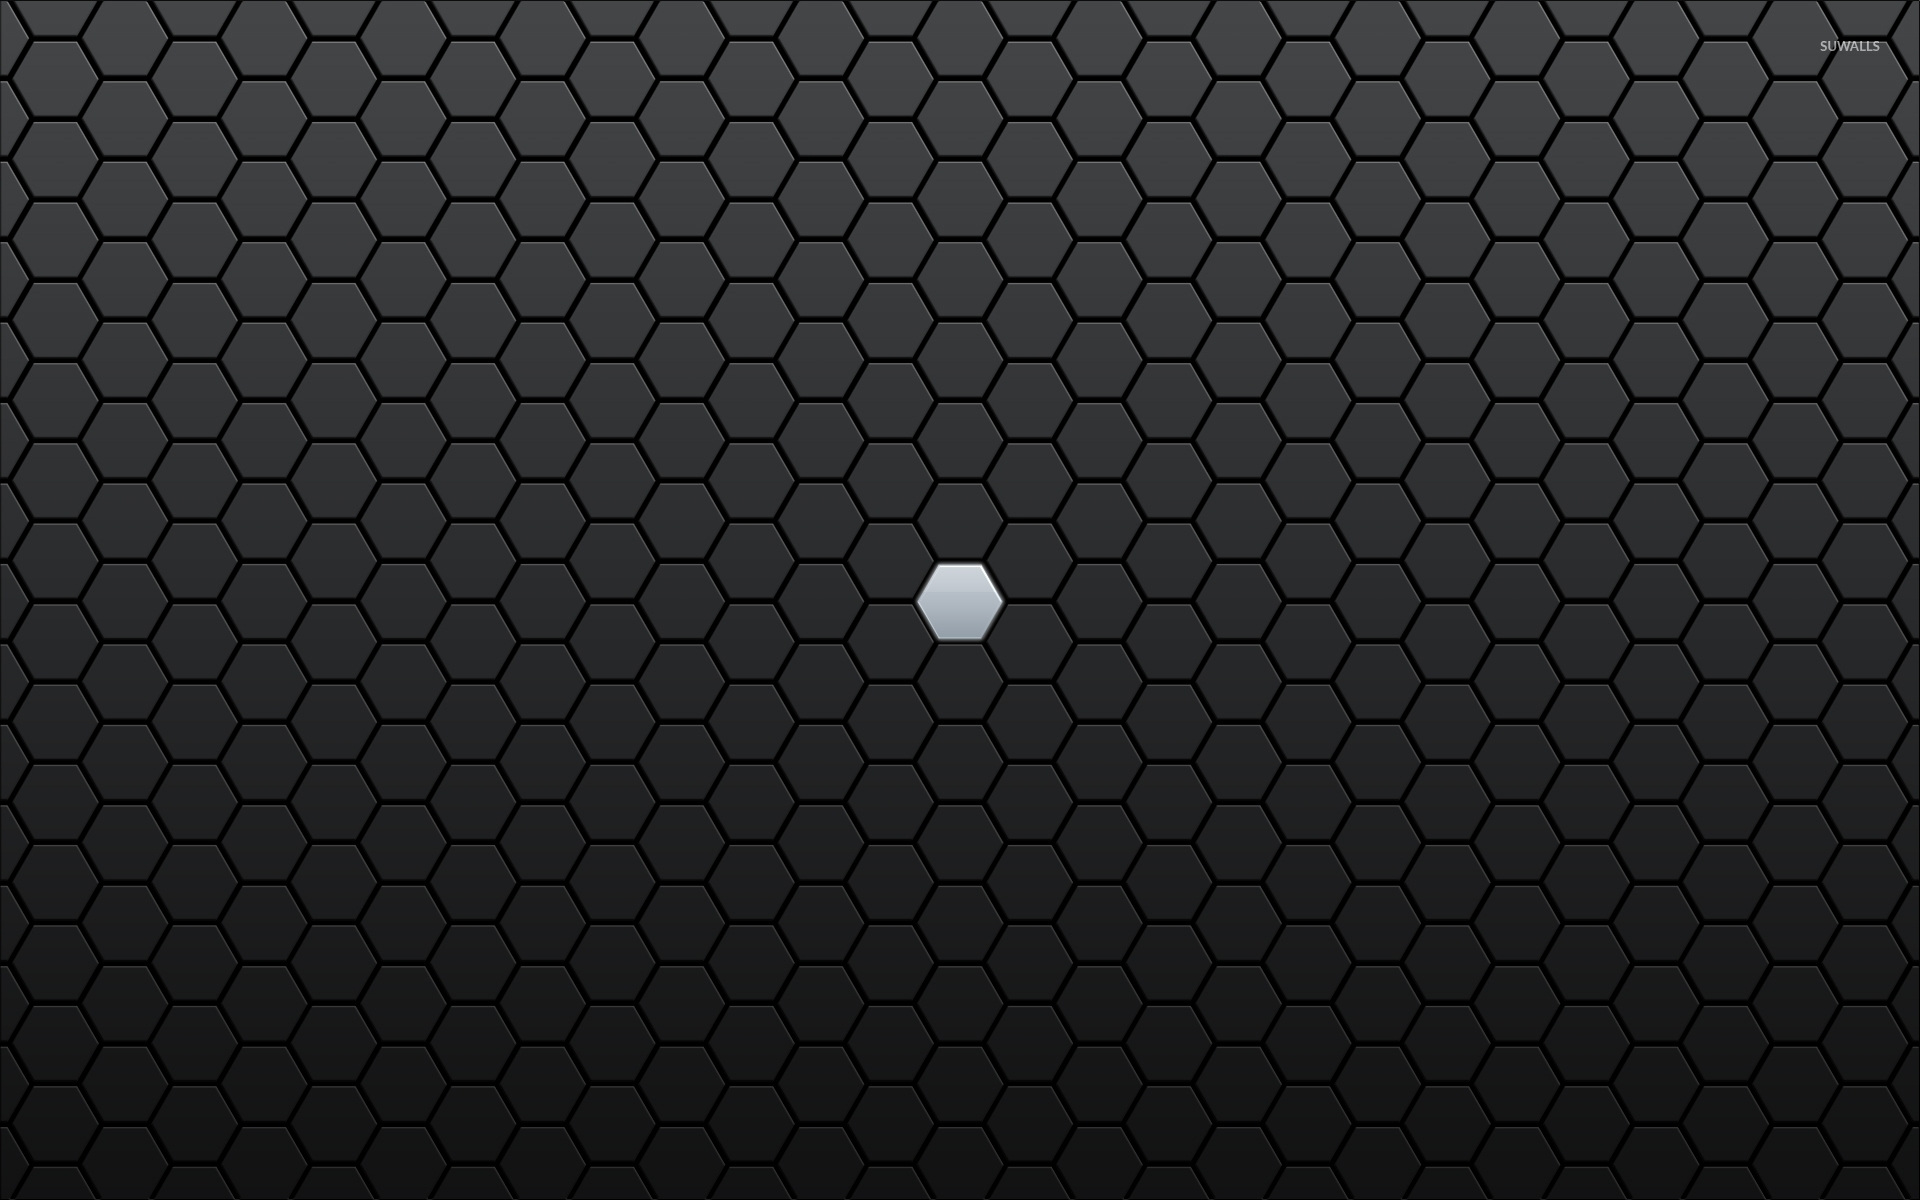 gray hexagon lost between black ones wallpaper - abstract wallpapers